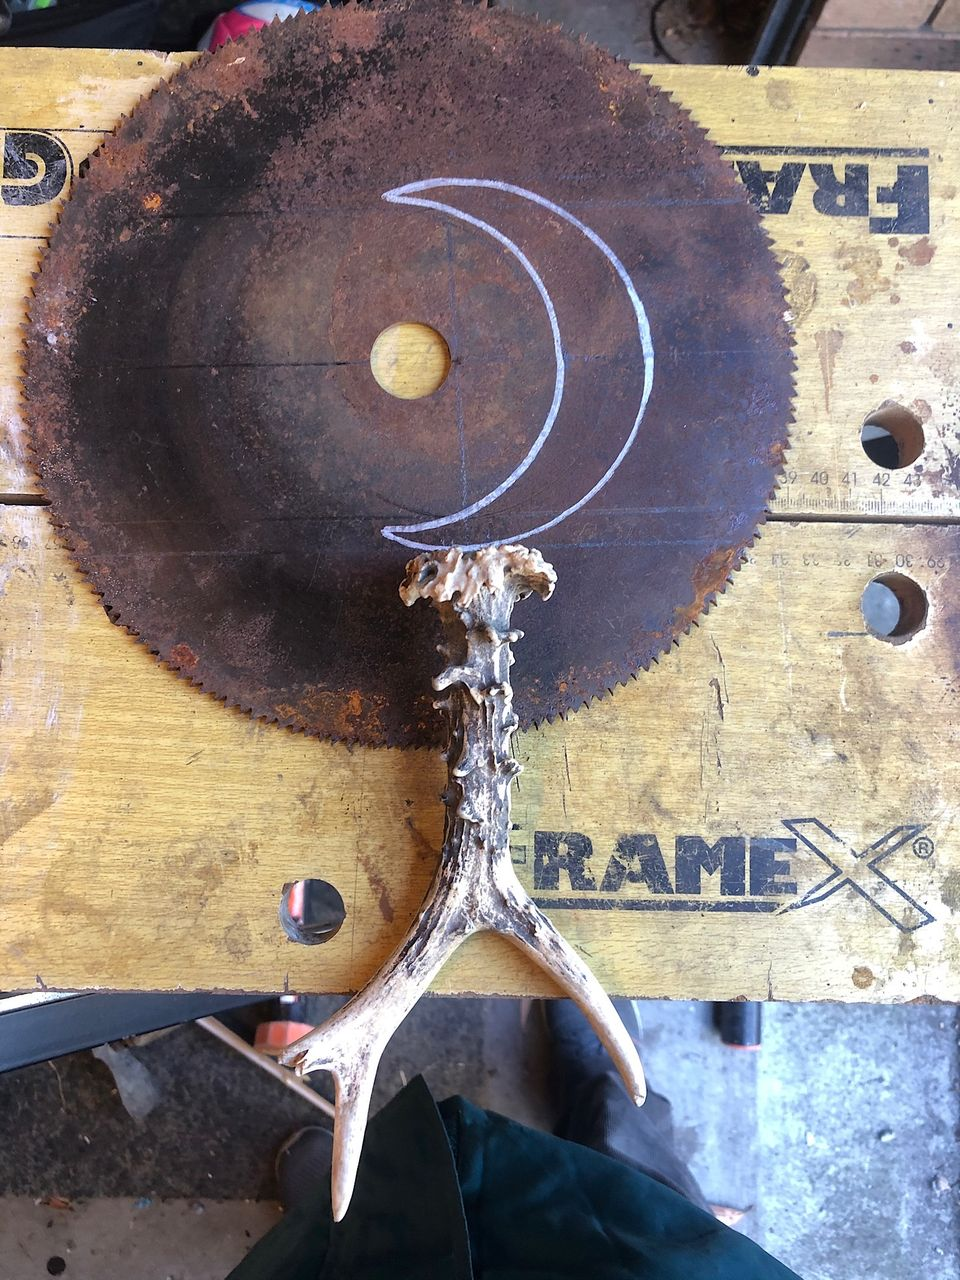 Boline with antler on circular saw blade